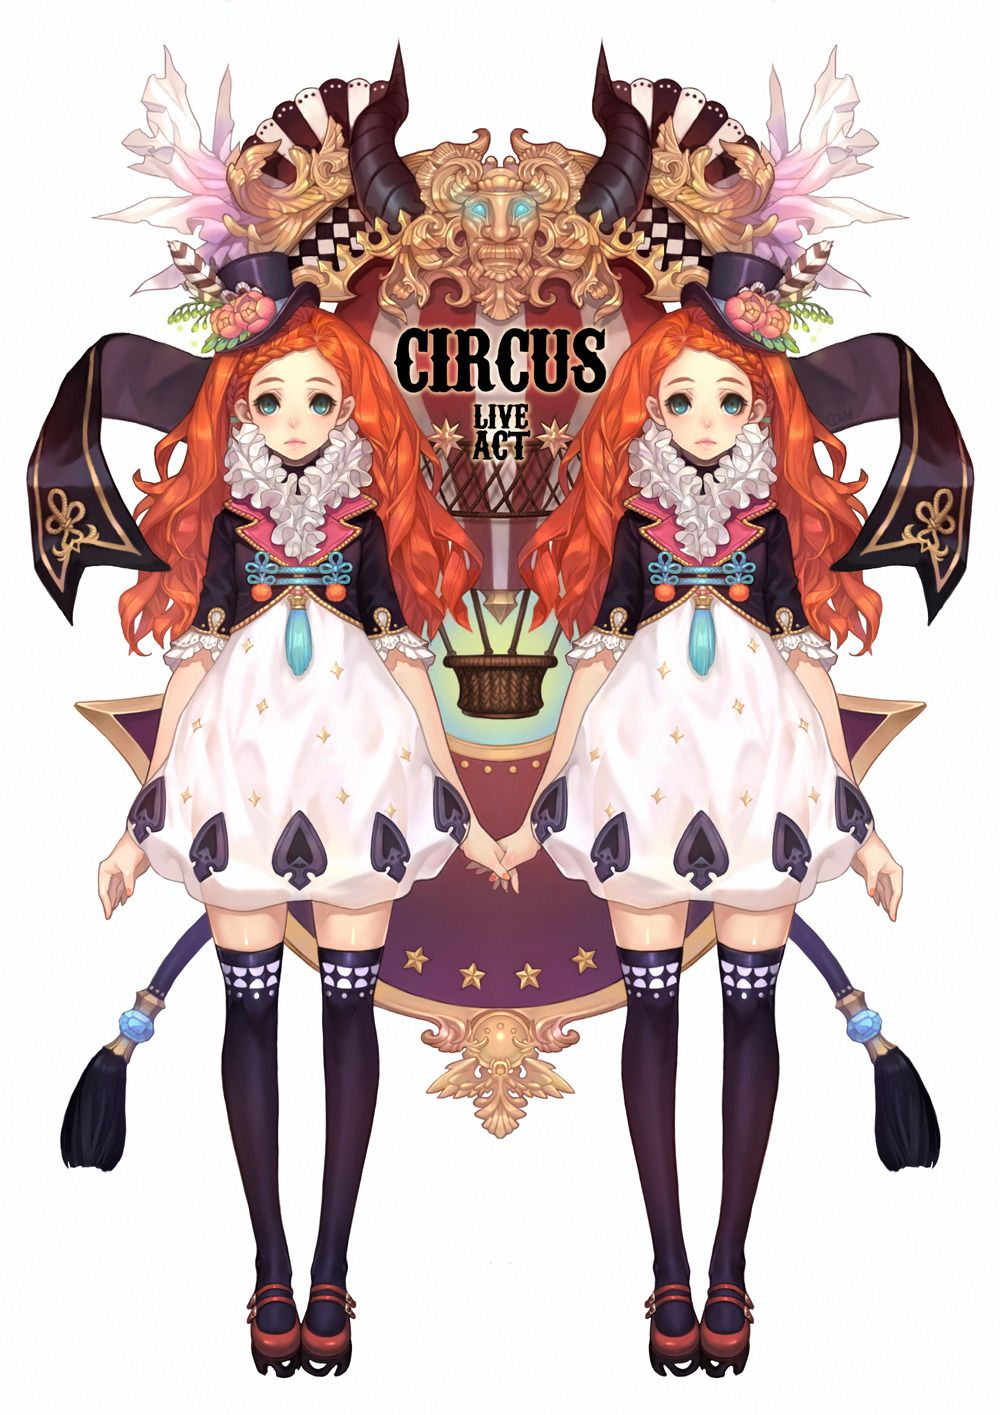 circus girls by olivia830 ピエロ イラスト マンガアート 插画